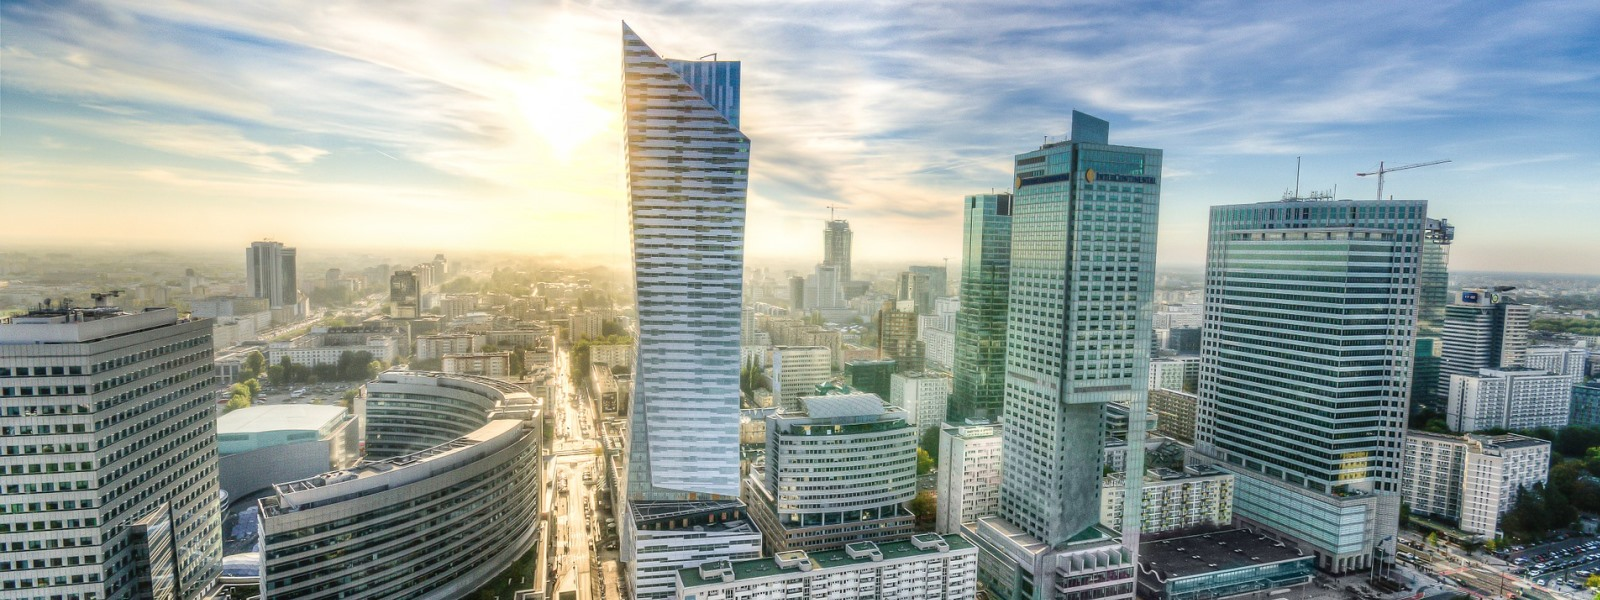 Key amendments of Polish withholding tax reform deferred again